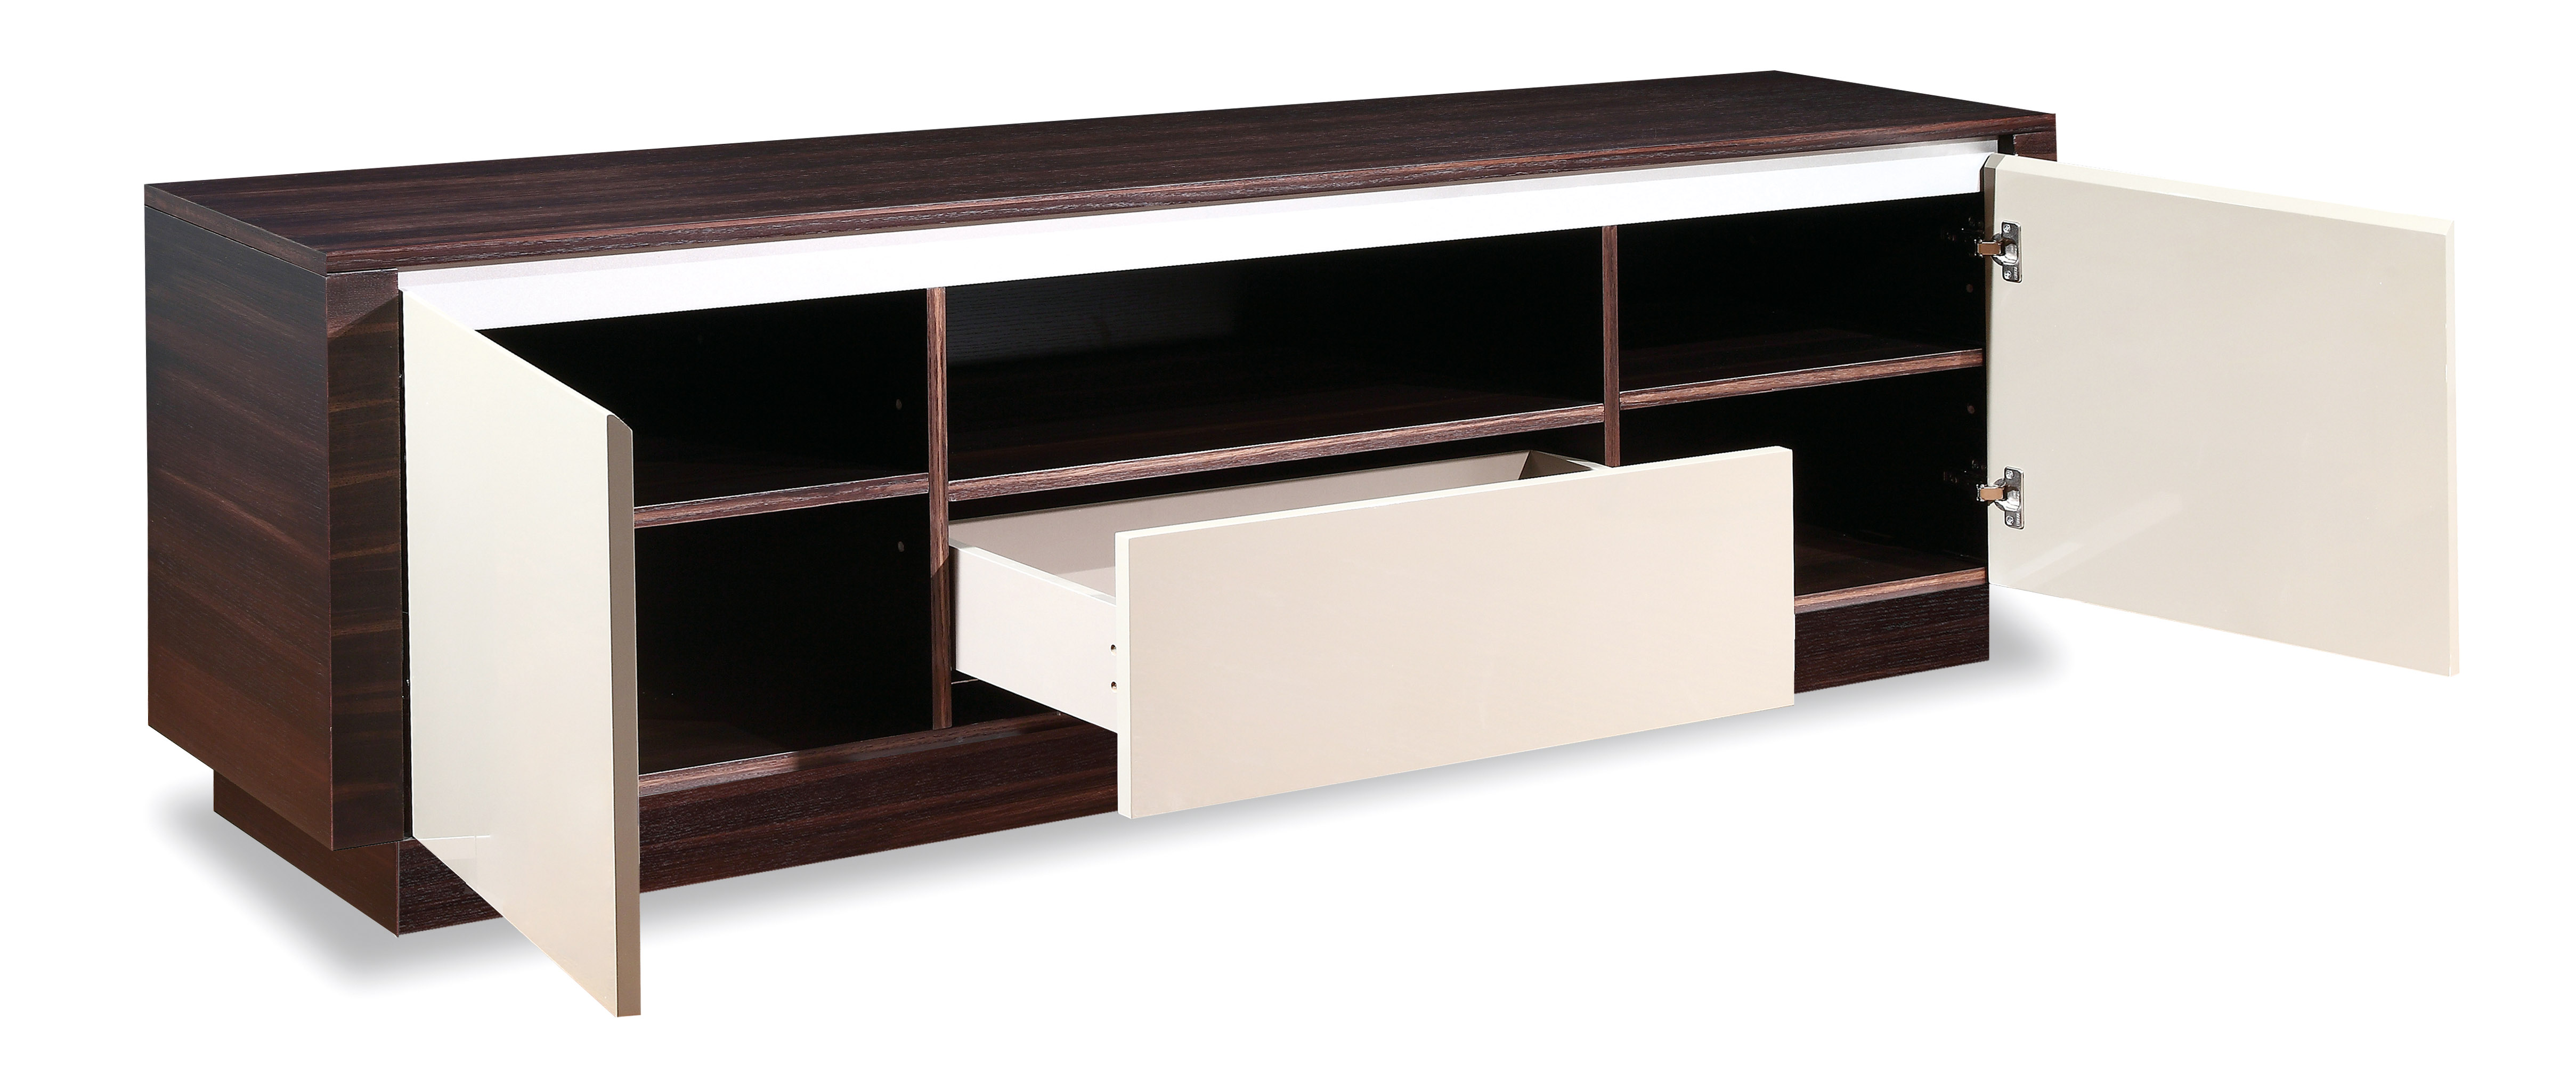 Contemporary Walnut Long Console with Storage Drawers - Click Image to Close